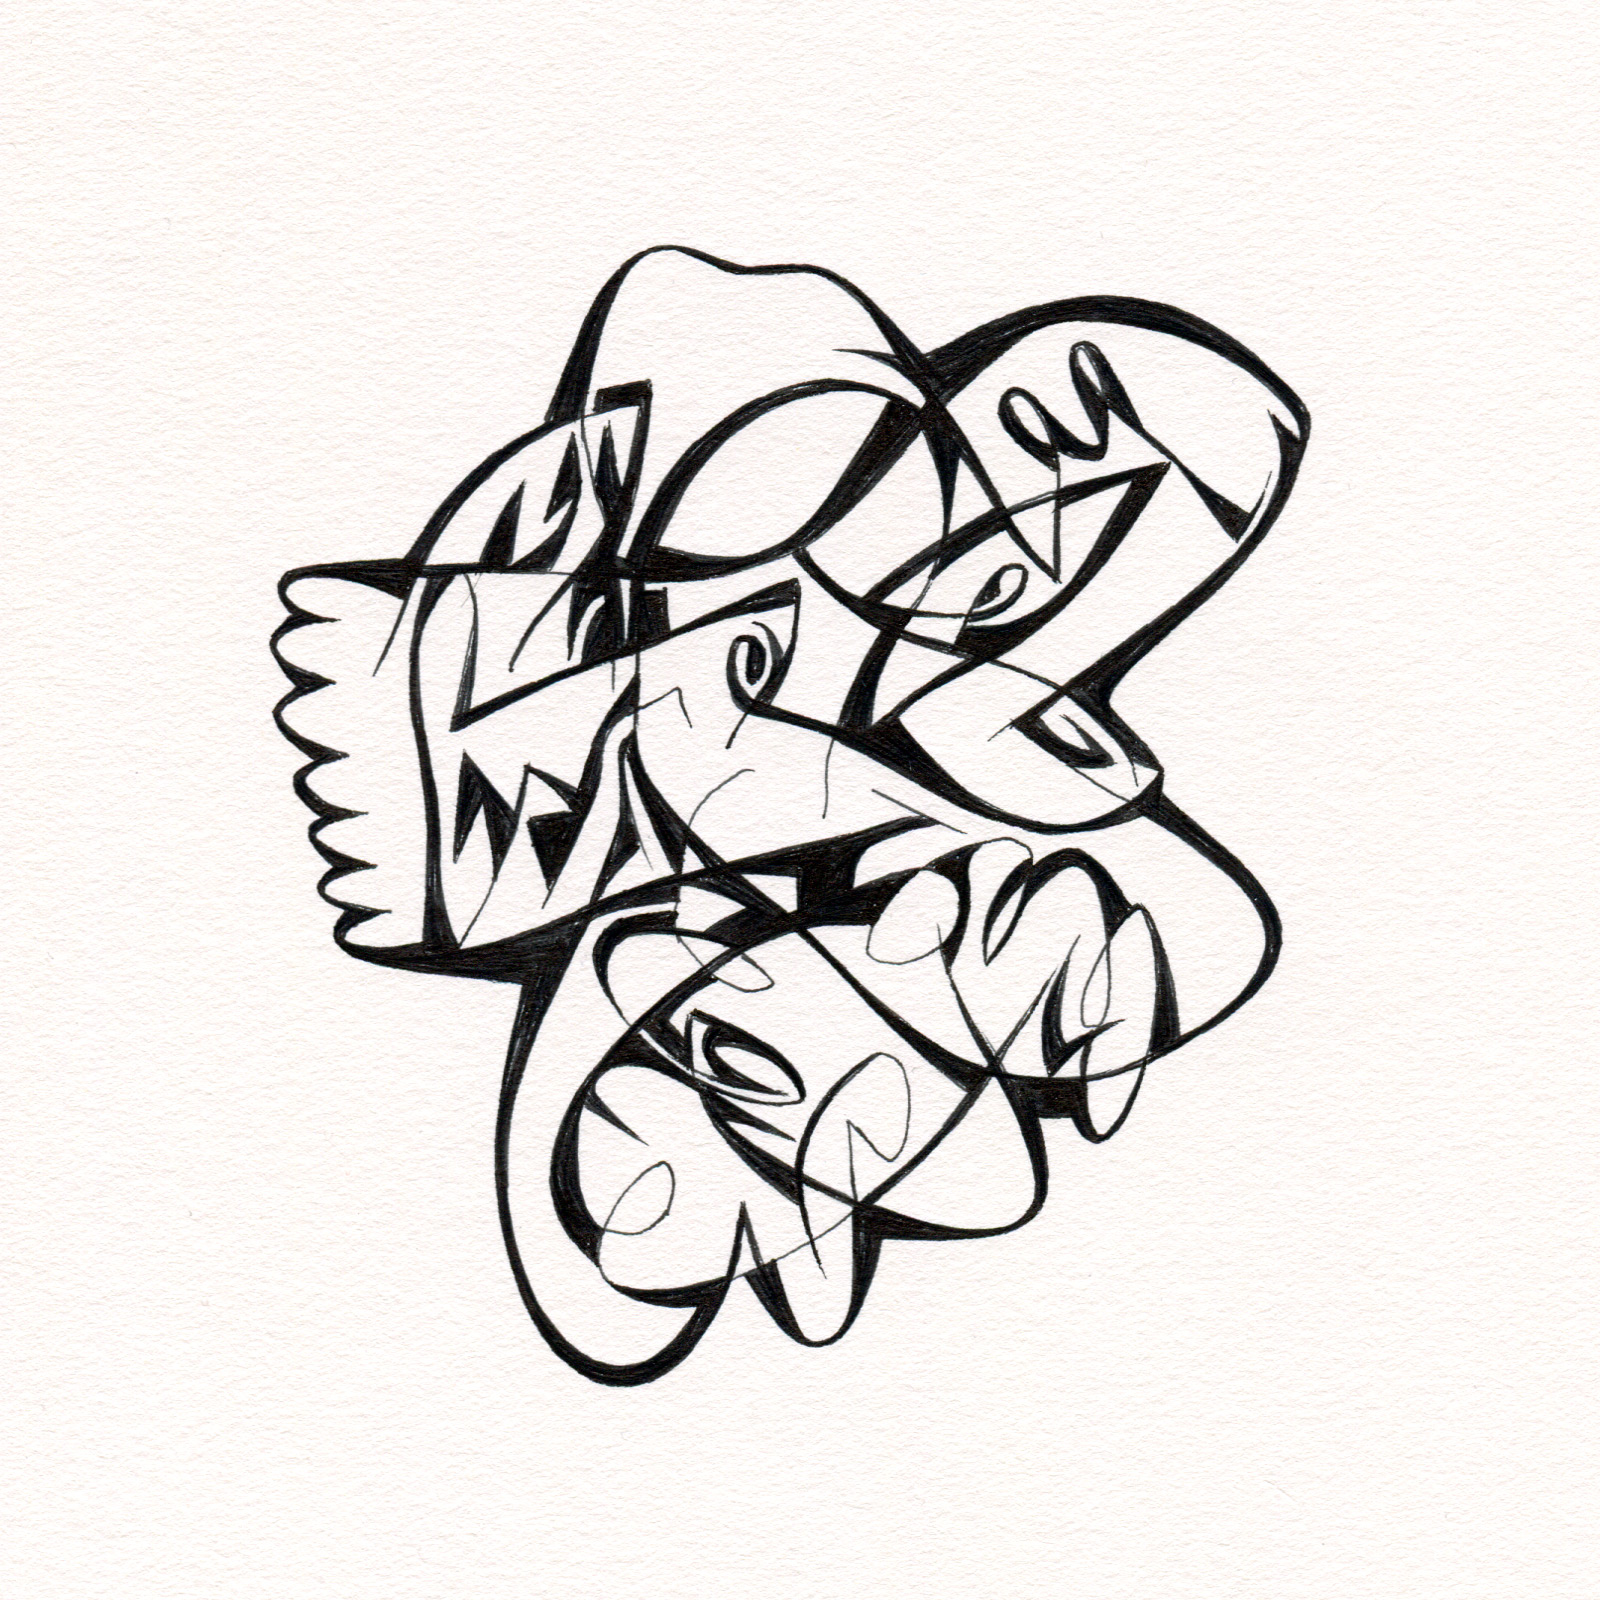 "Untitled Ink Drawing #63 , 2015. Ink on paper. Approximately 5"" x 5""."